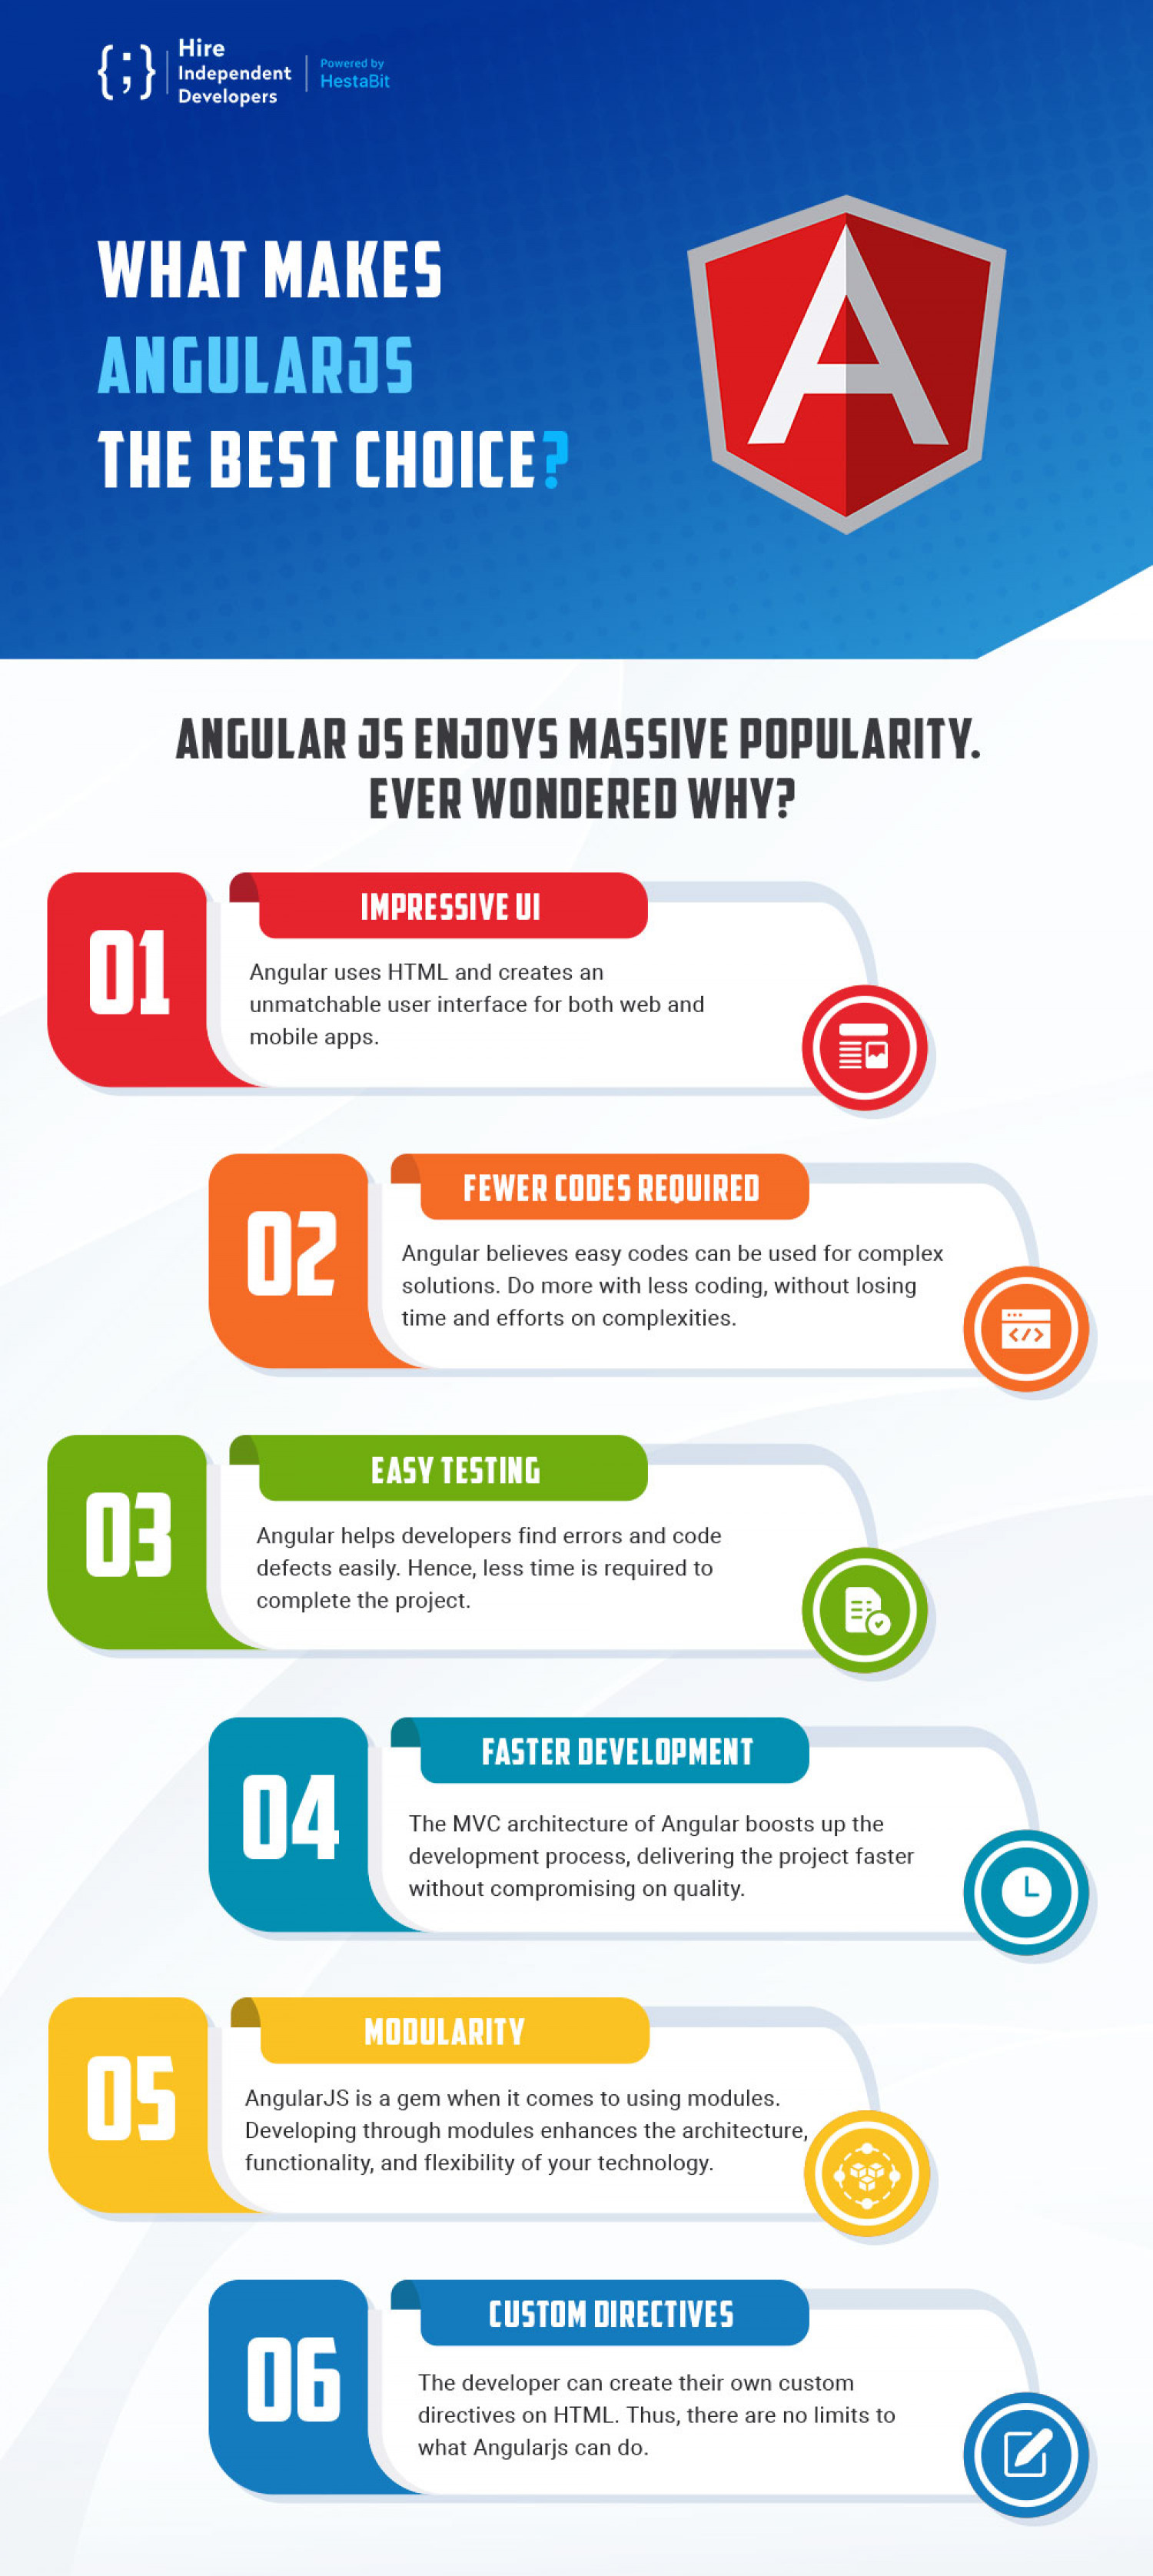 What Makes AngularJS The Best Choice? Infographic